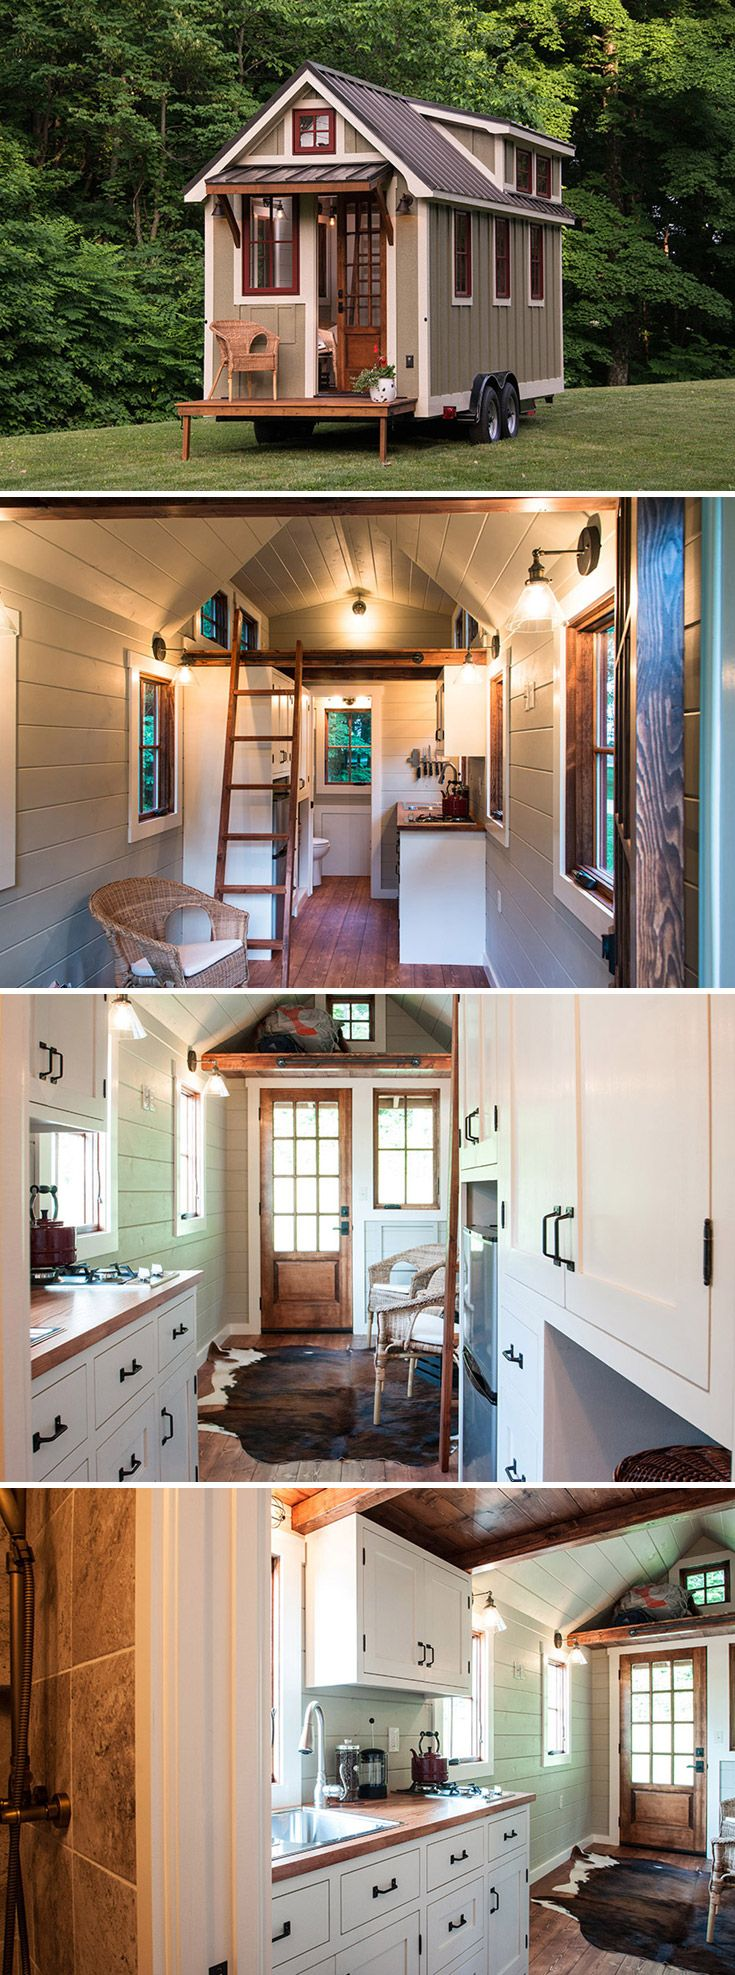 a 150 sqft tiny house on wheels with upper cabinets and a large